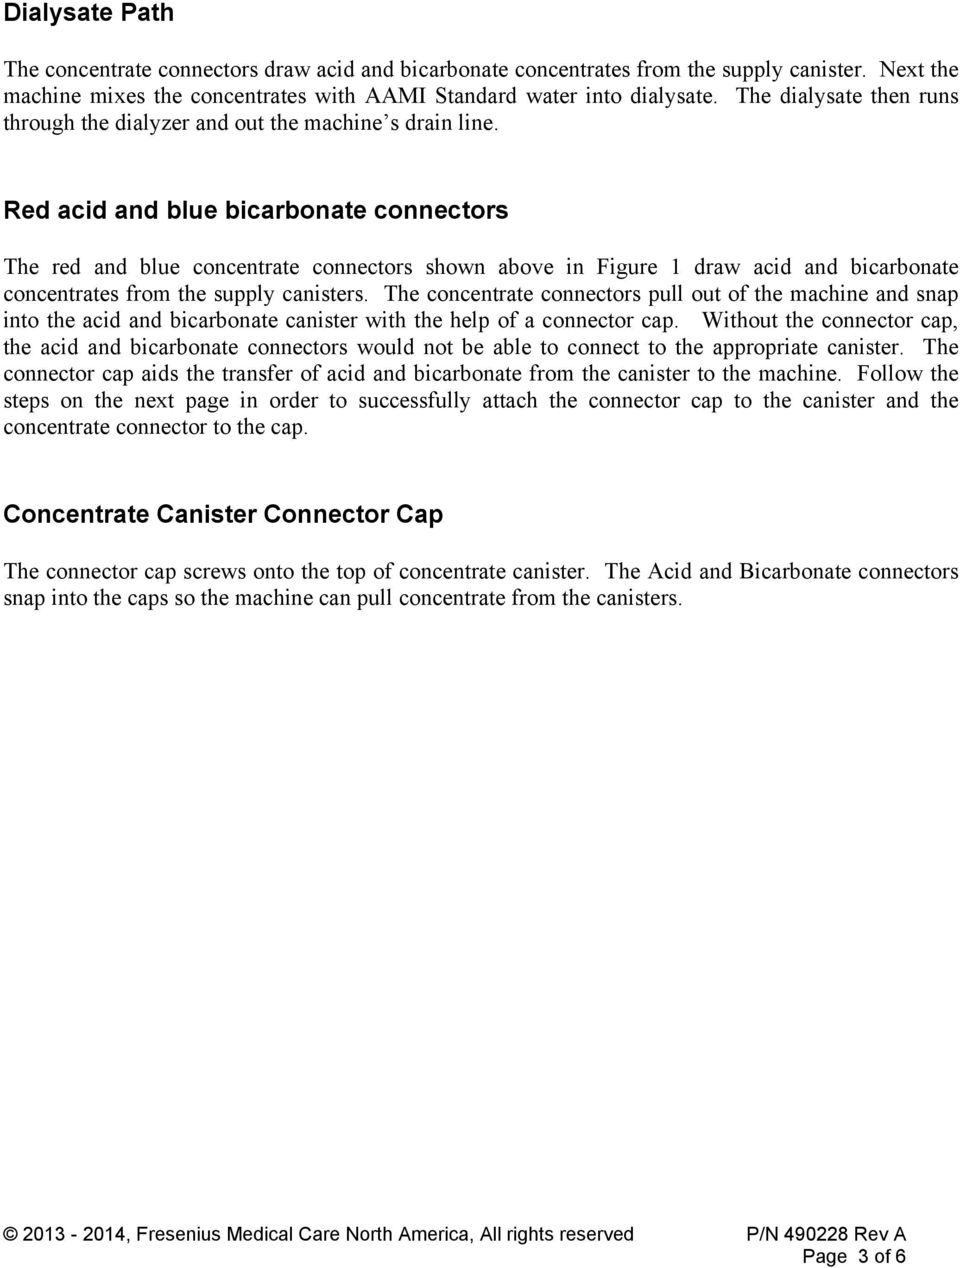 Red acid and blue bicarbonate connectors The red and blue concentrate connectors shown above in Figure 1 draw acid and bicarbonate concentrates from the supply canisters.